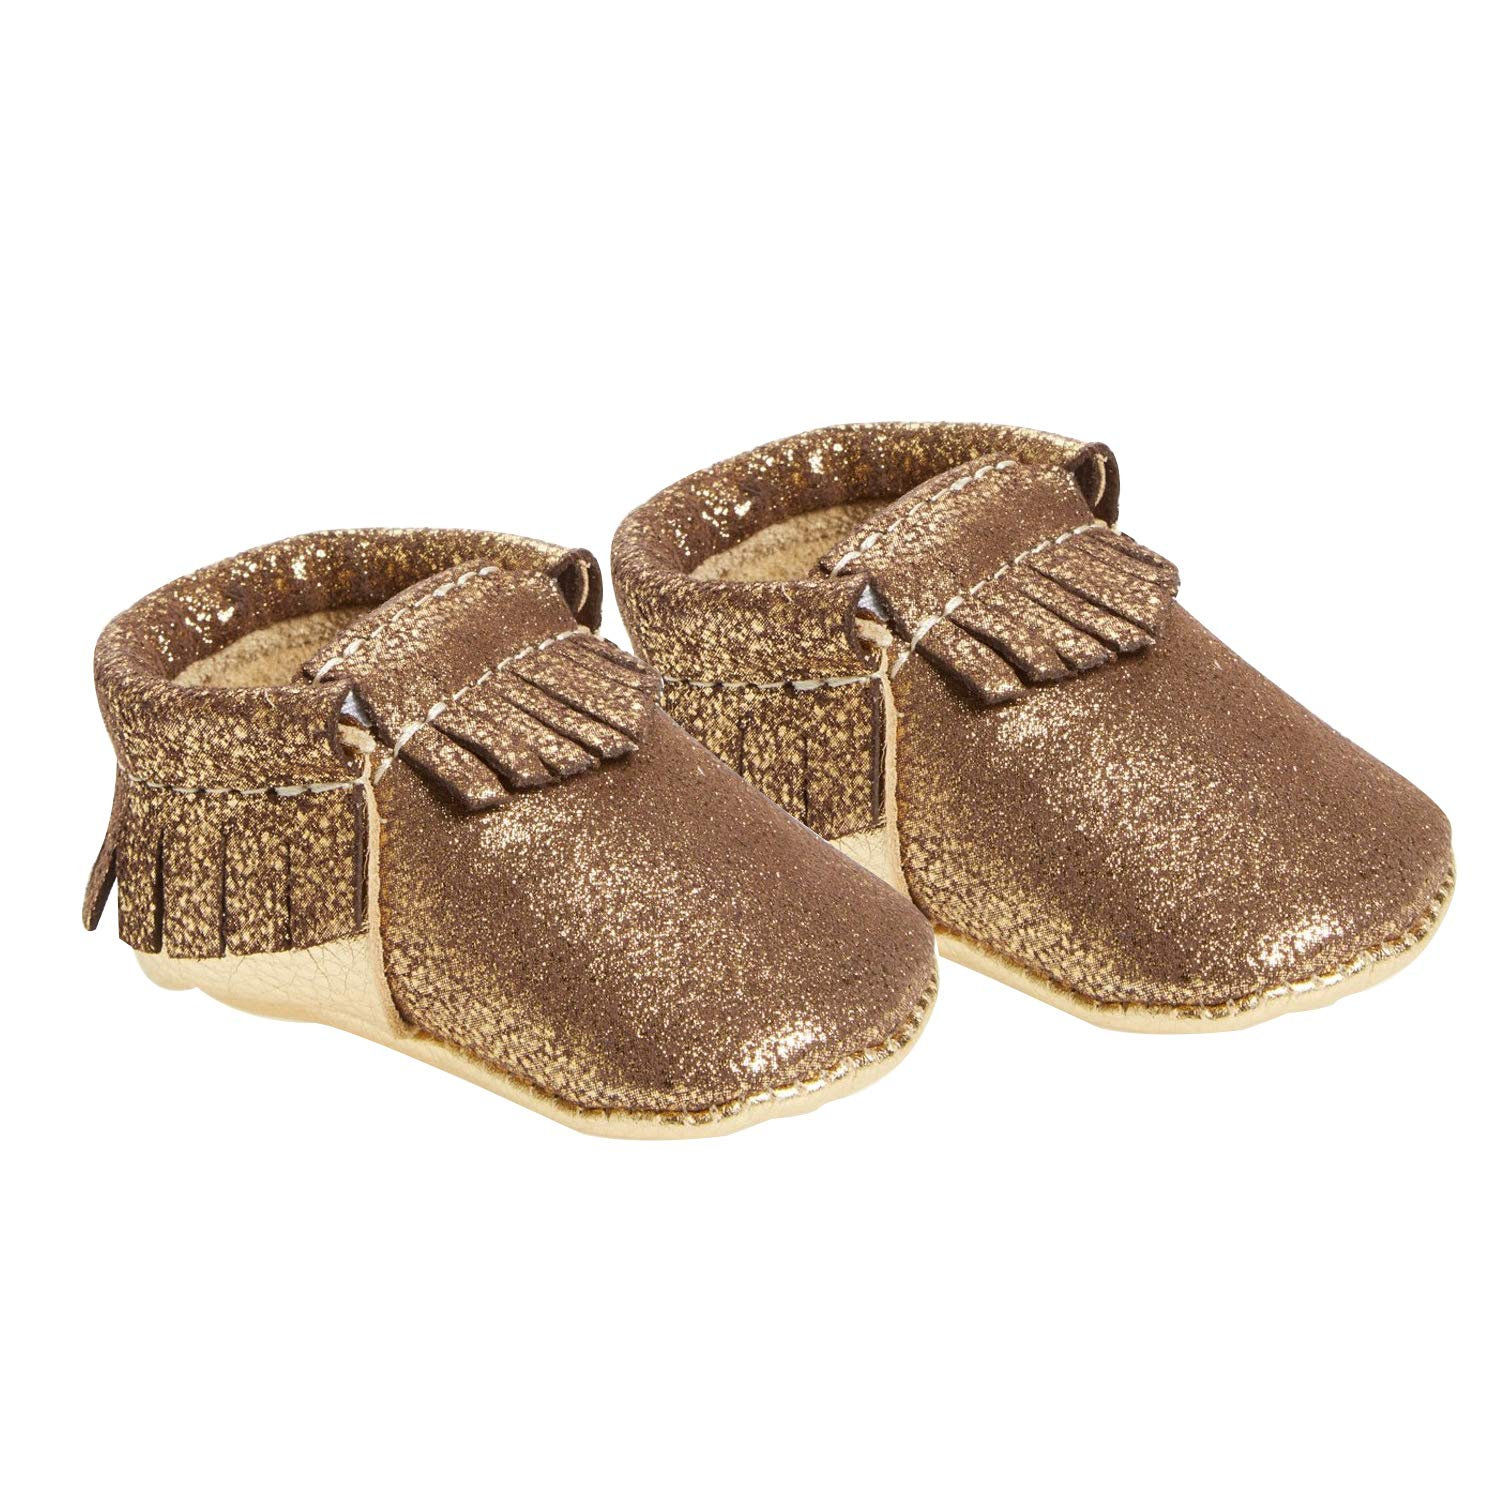 Freshly Picked Soft Sole Leather Baby Moccasins - Glitzy Gold Size 1